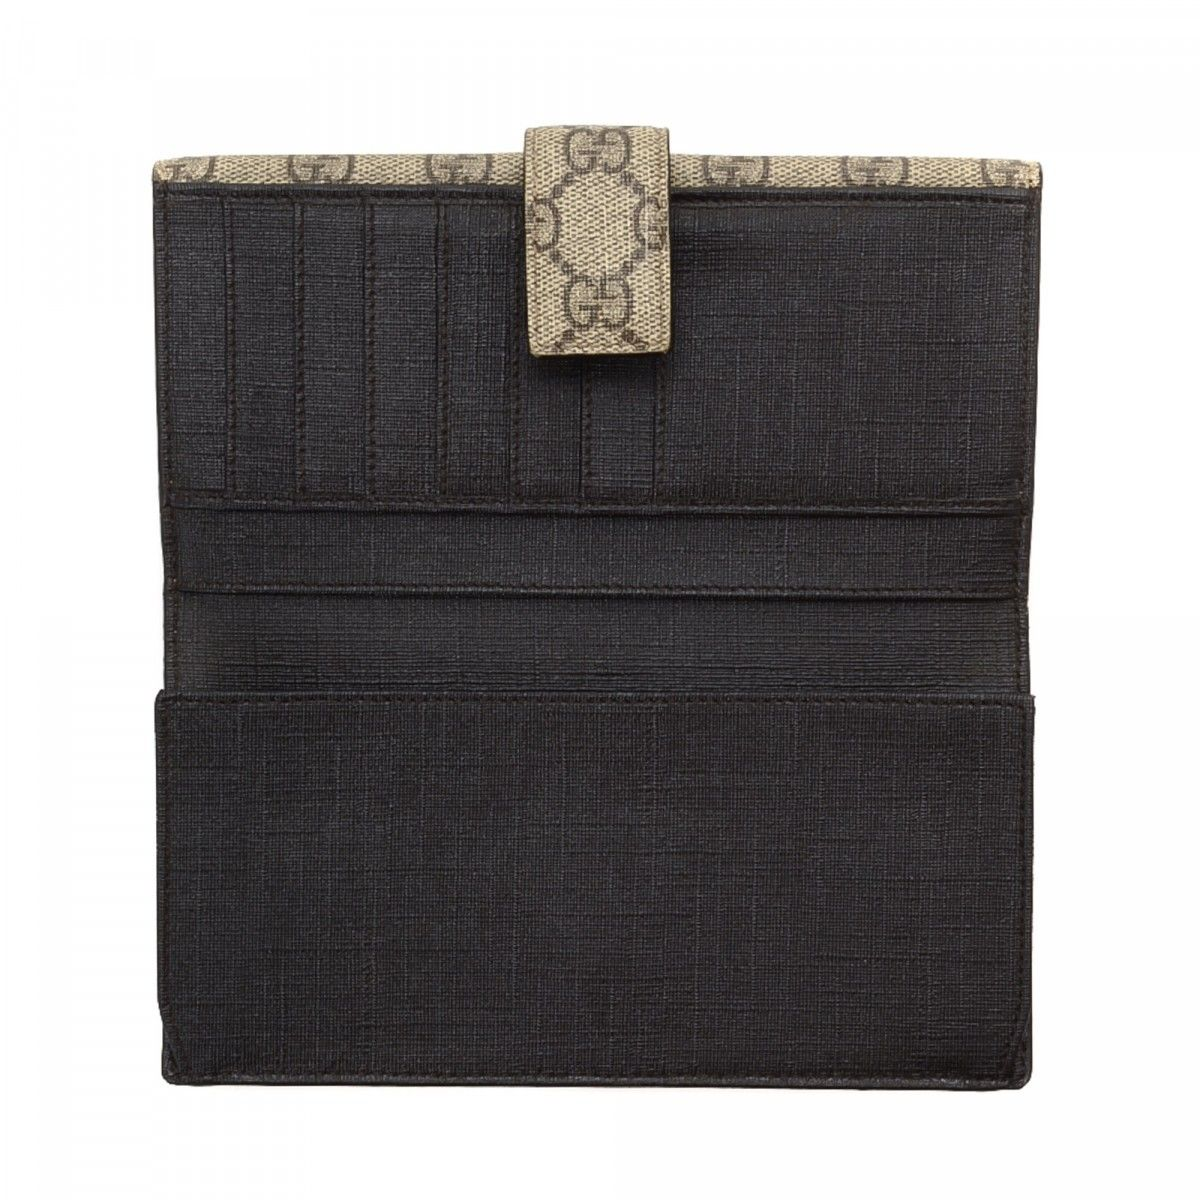 Coated-canvas Continental Wallet - Beige Gucci zX6bTnl2